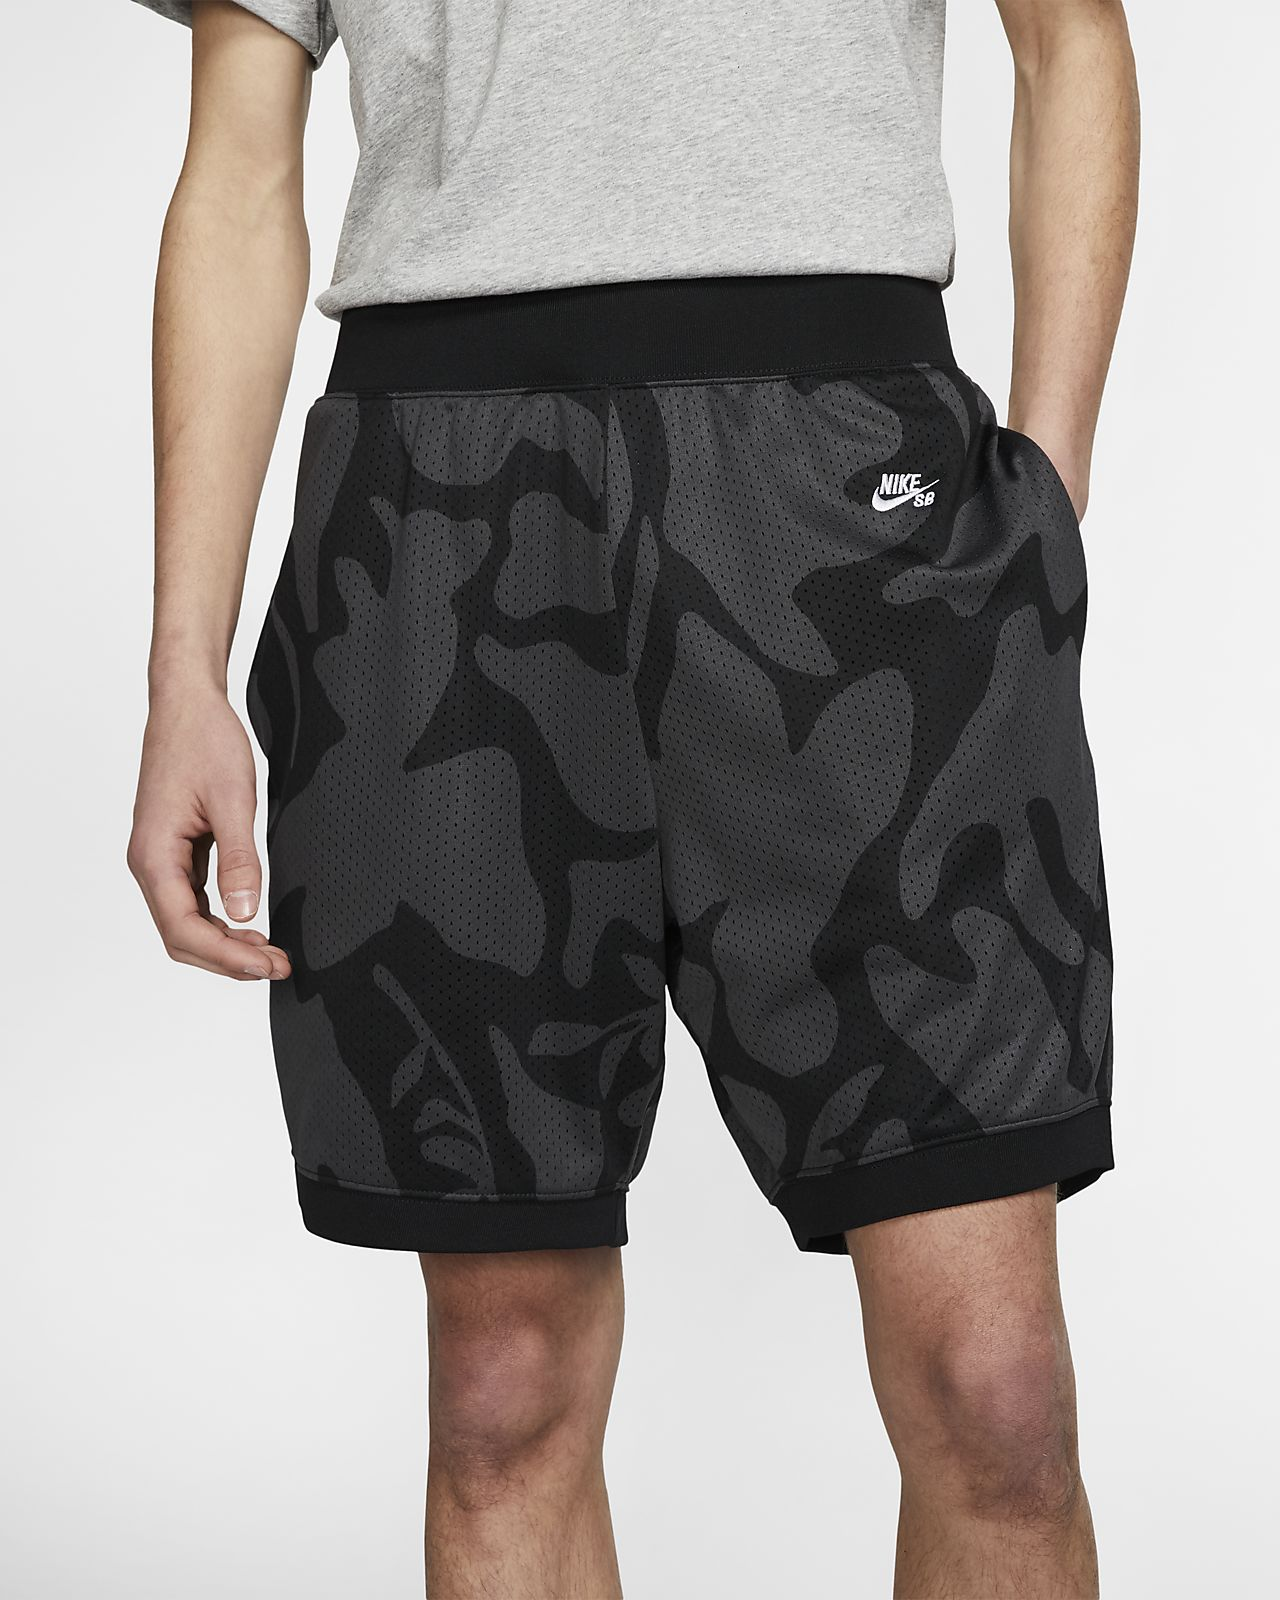 Nike SB Dri-FIT Men's Printed Skate Shorts